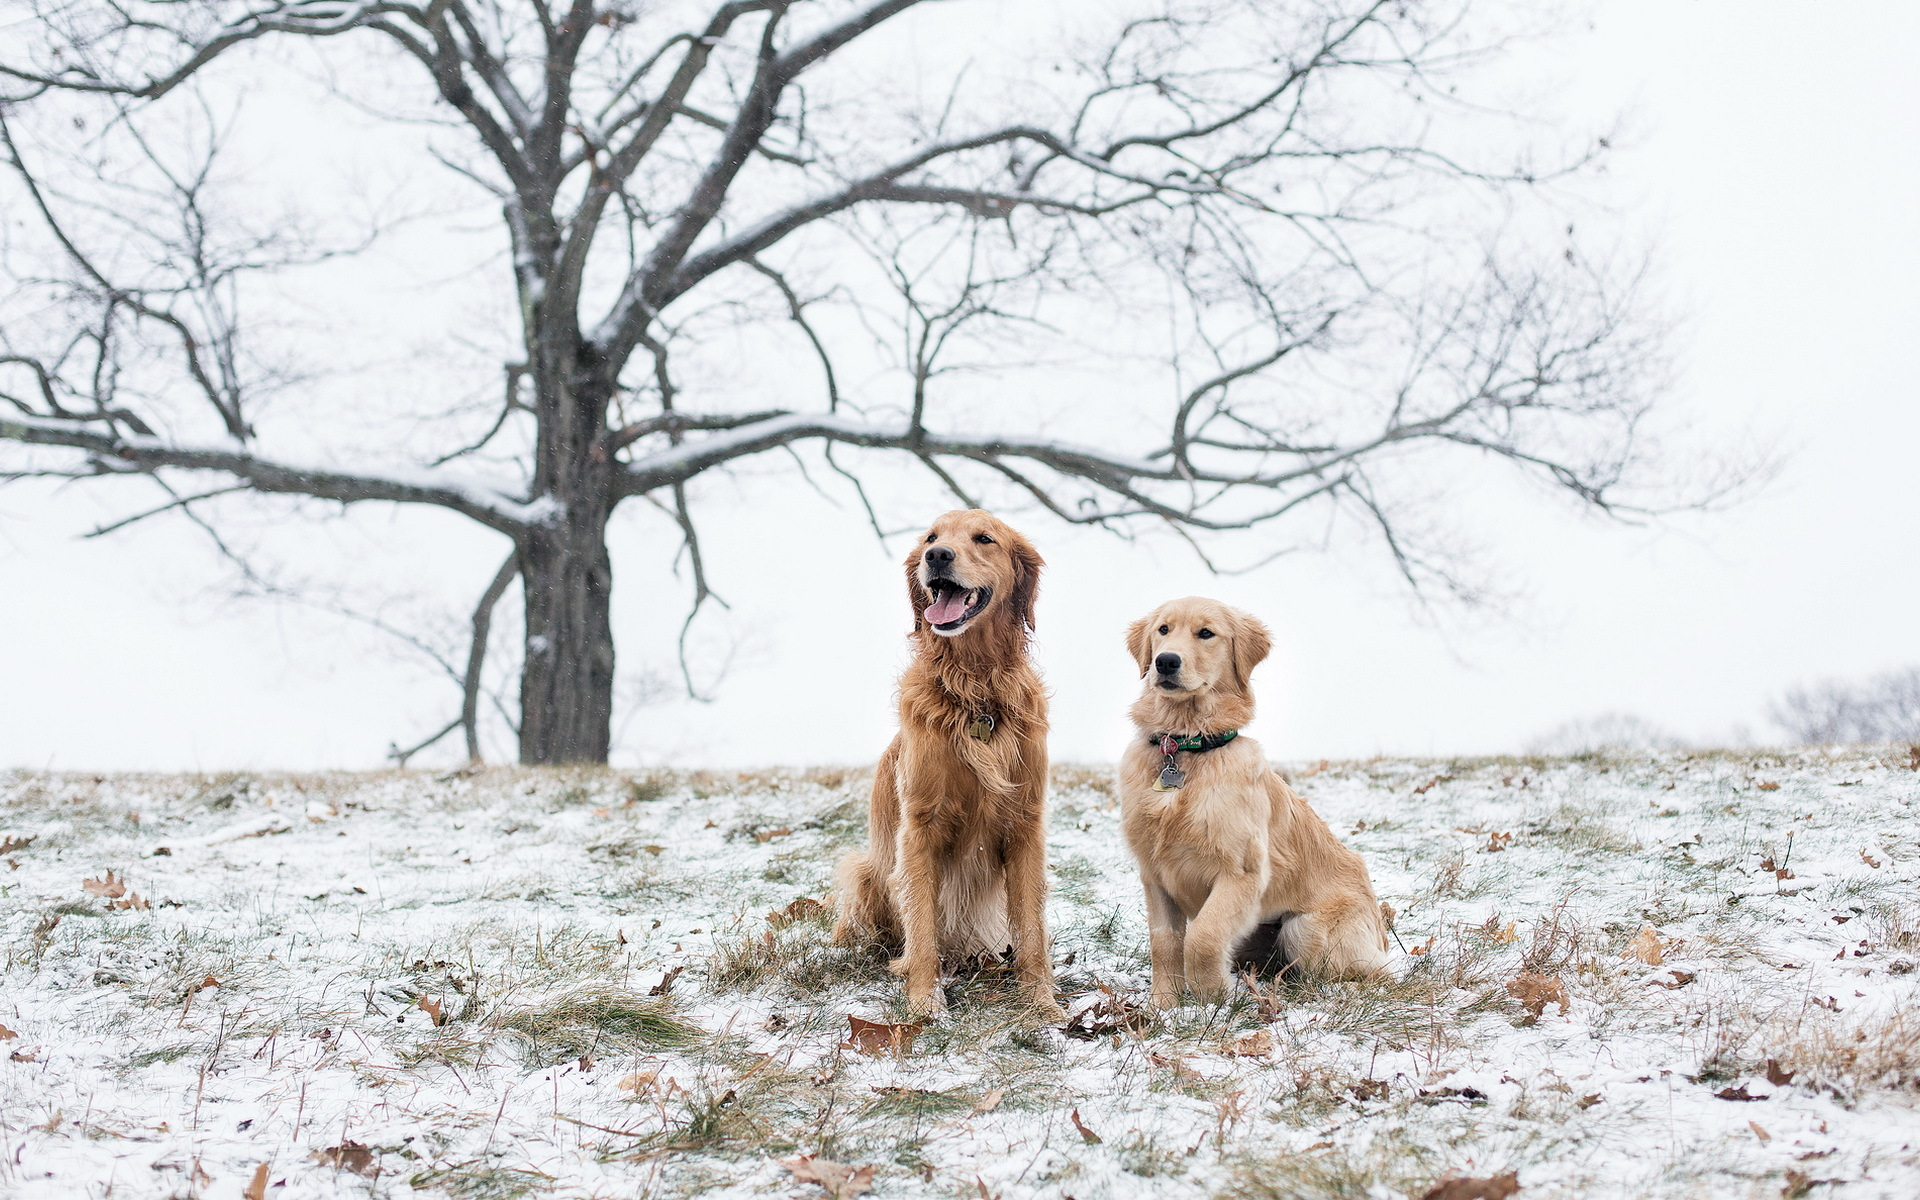 http://www.rbc.ua/static/files/gallery_uploads/images/Animals___Dogs_Two_dogs_in_the_snow_087948_.jpg